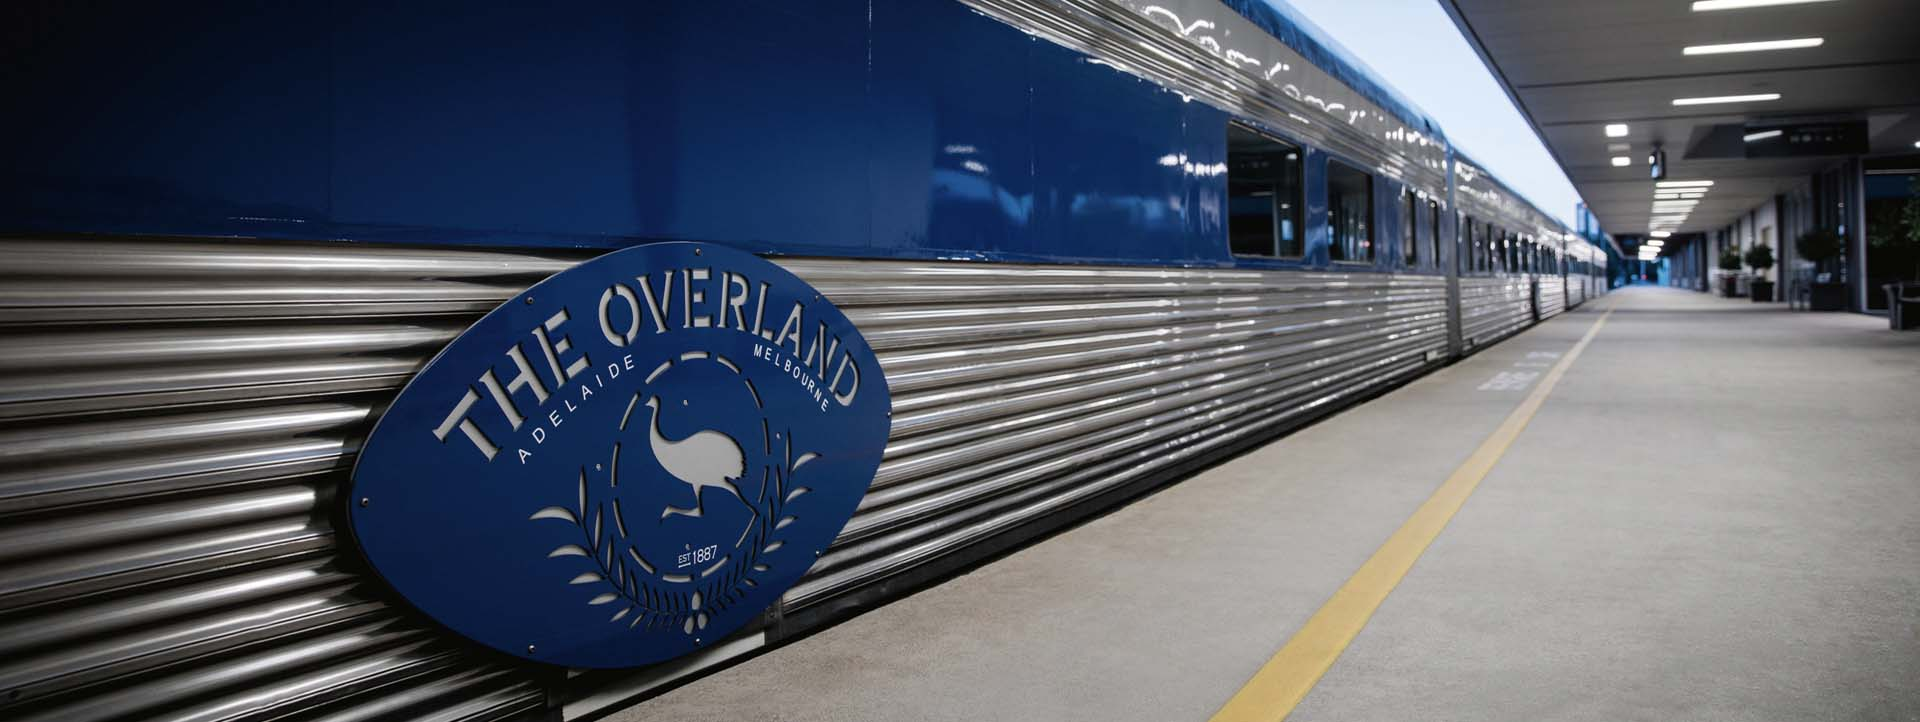 OVERLAND rail journeys Melbourne to Adelaide